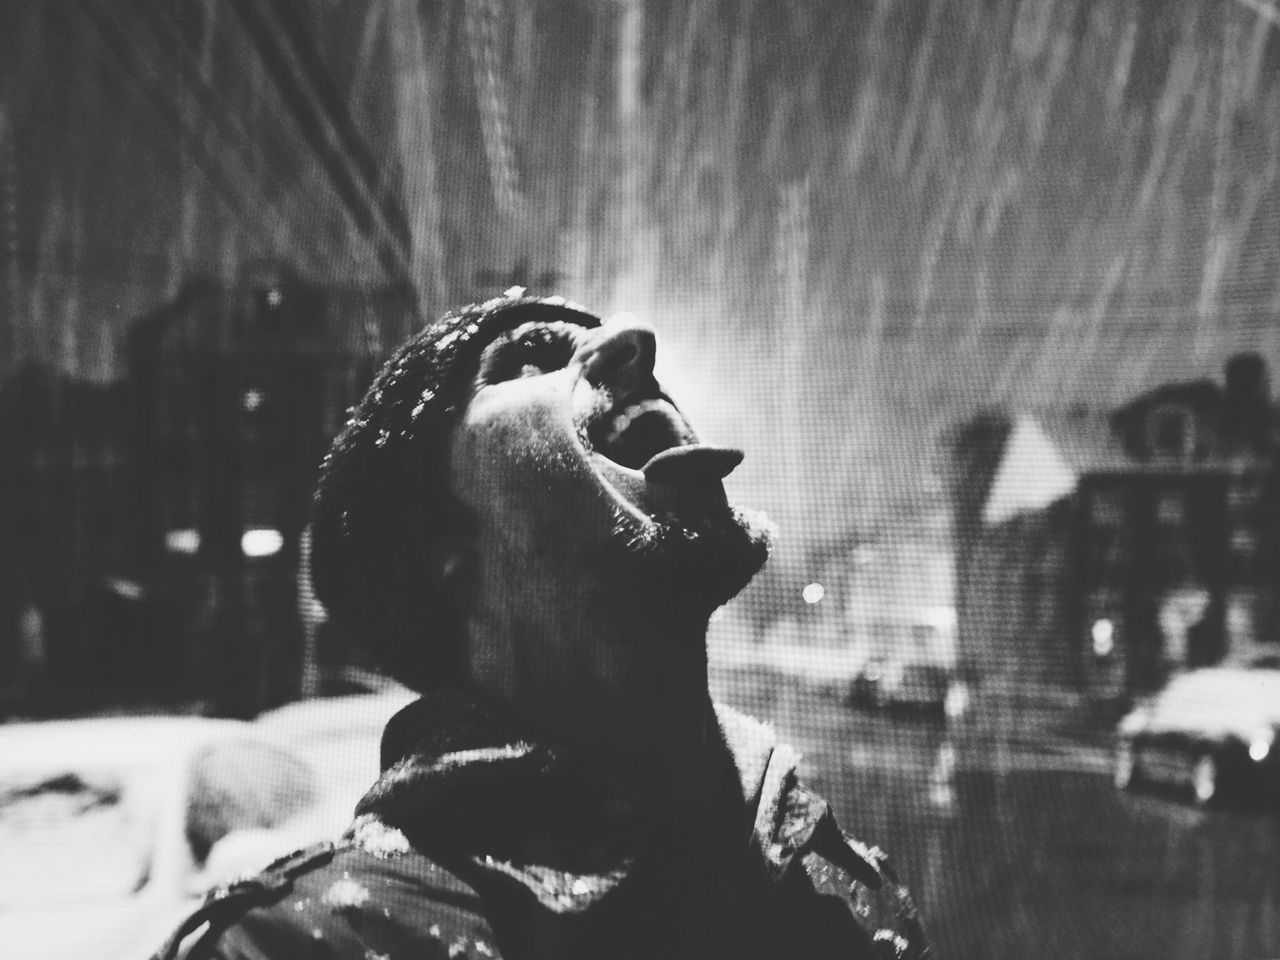 Close-up of man opening his mouth while snowing